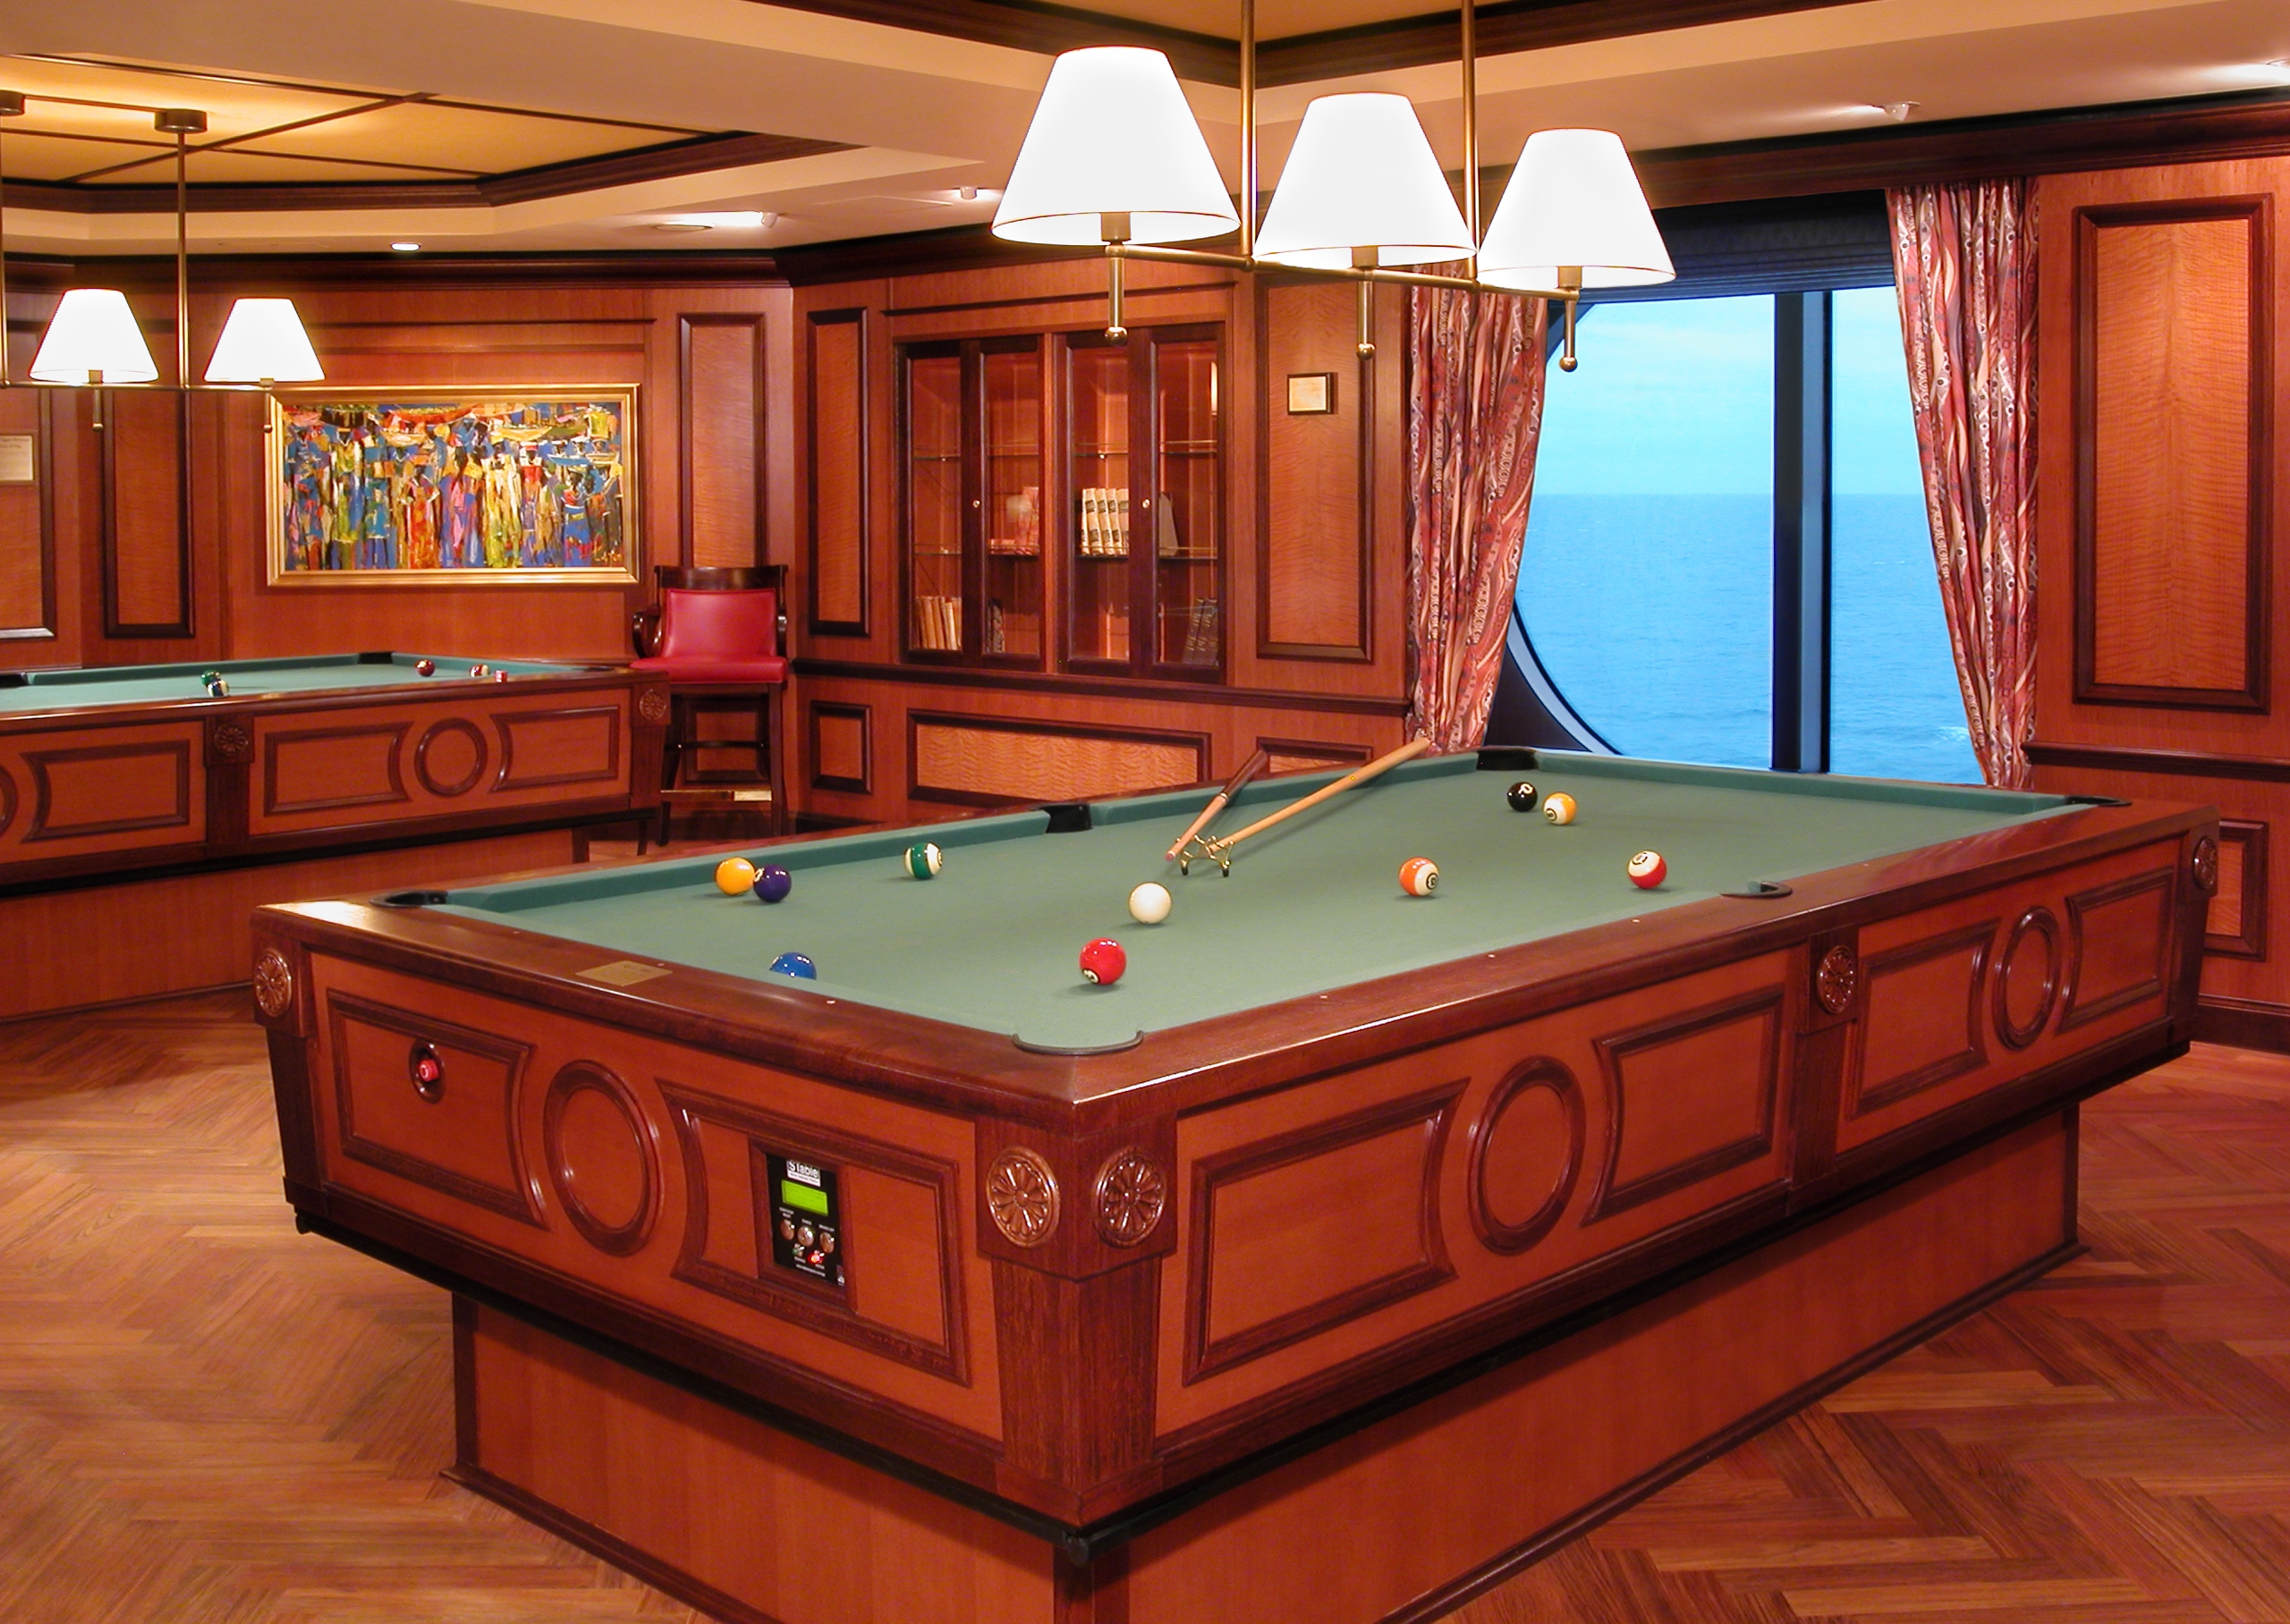 Of The Coolest Things In Travel - Travel pool table